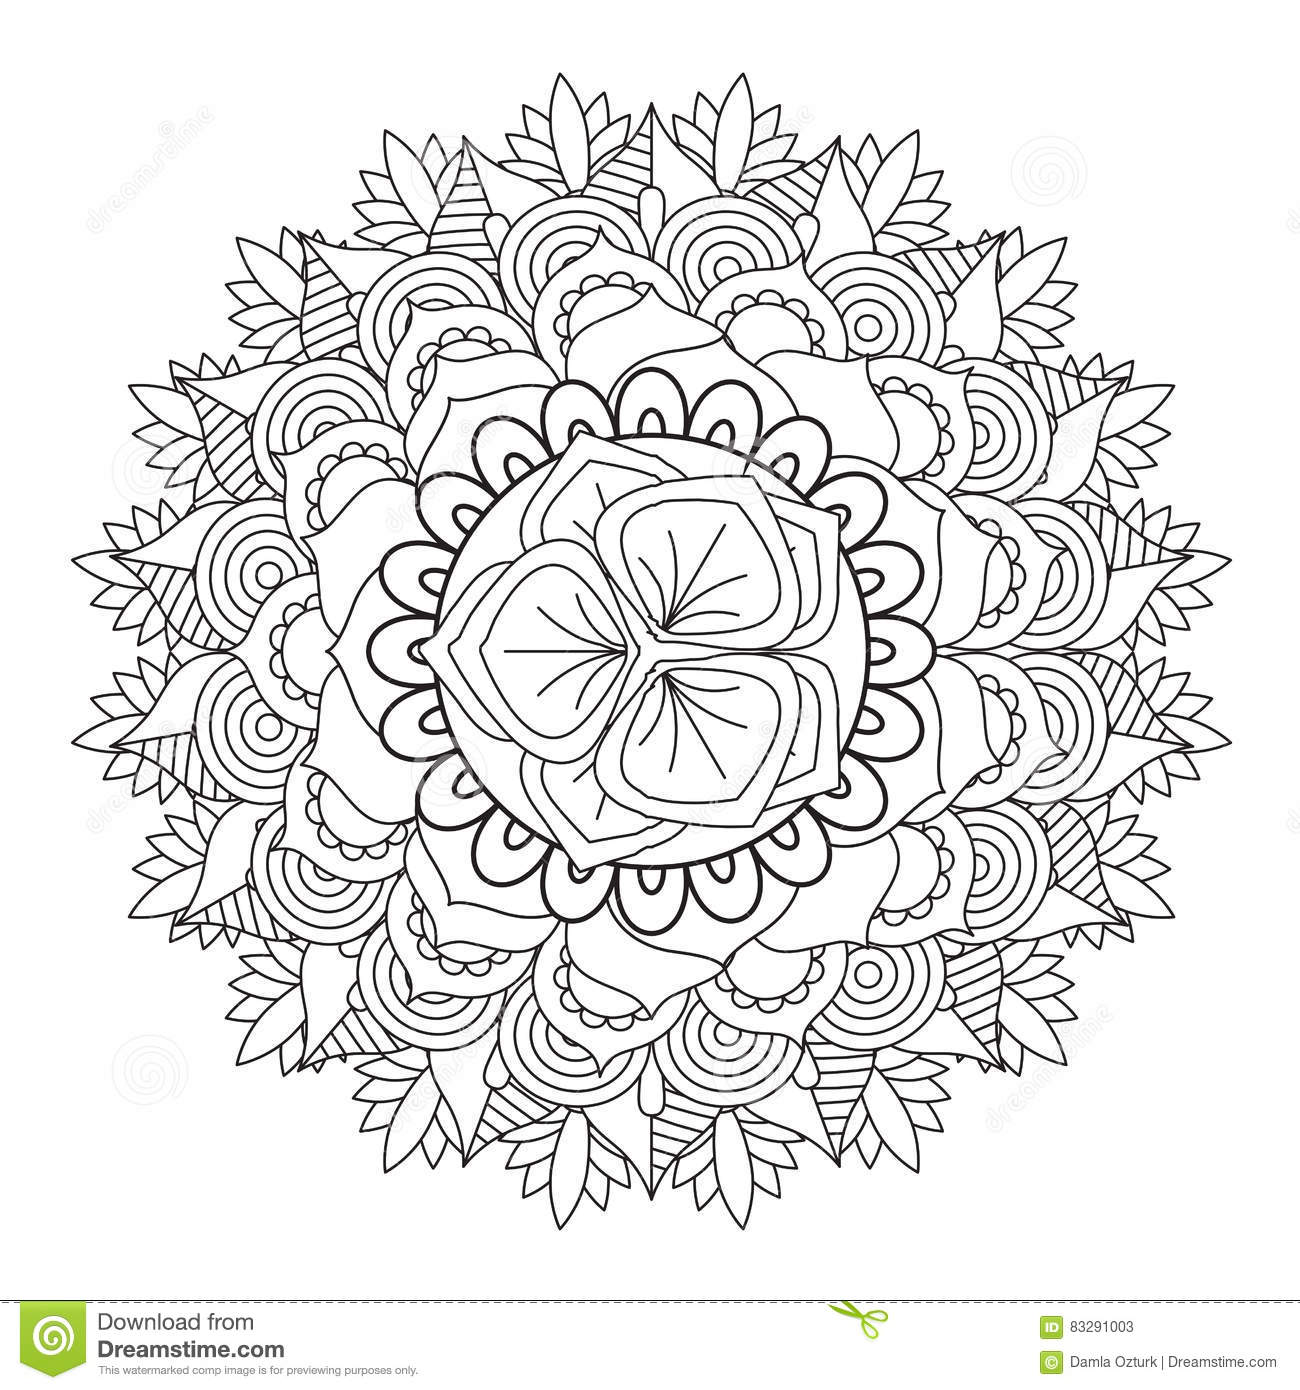 Outline Mandala For Coloring Book. Decorative Round